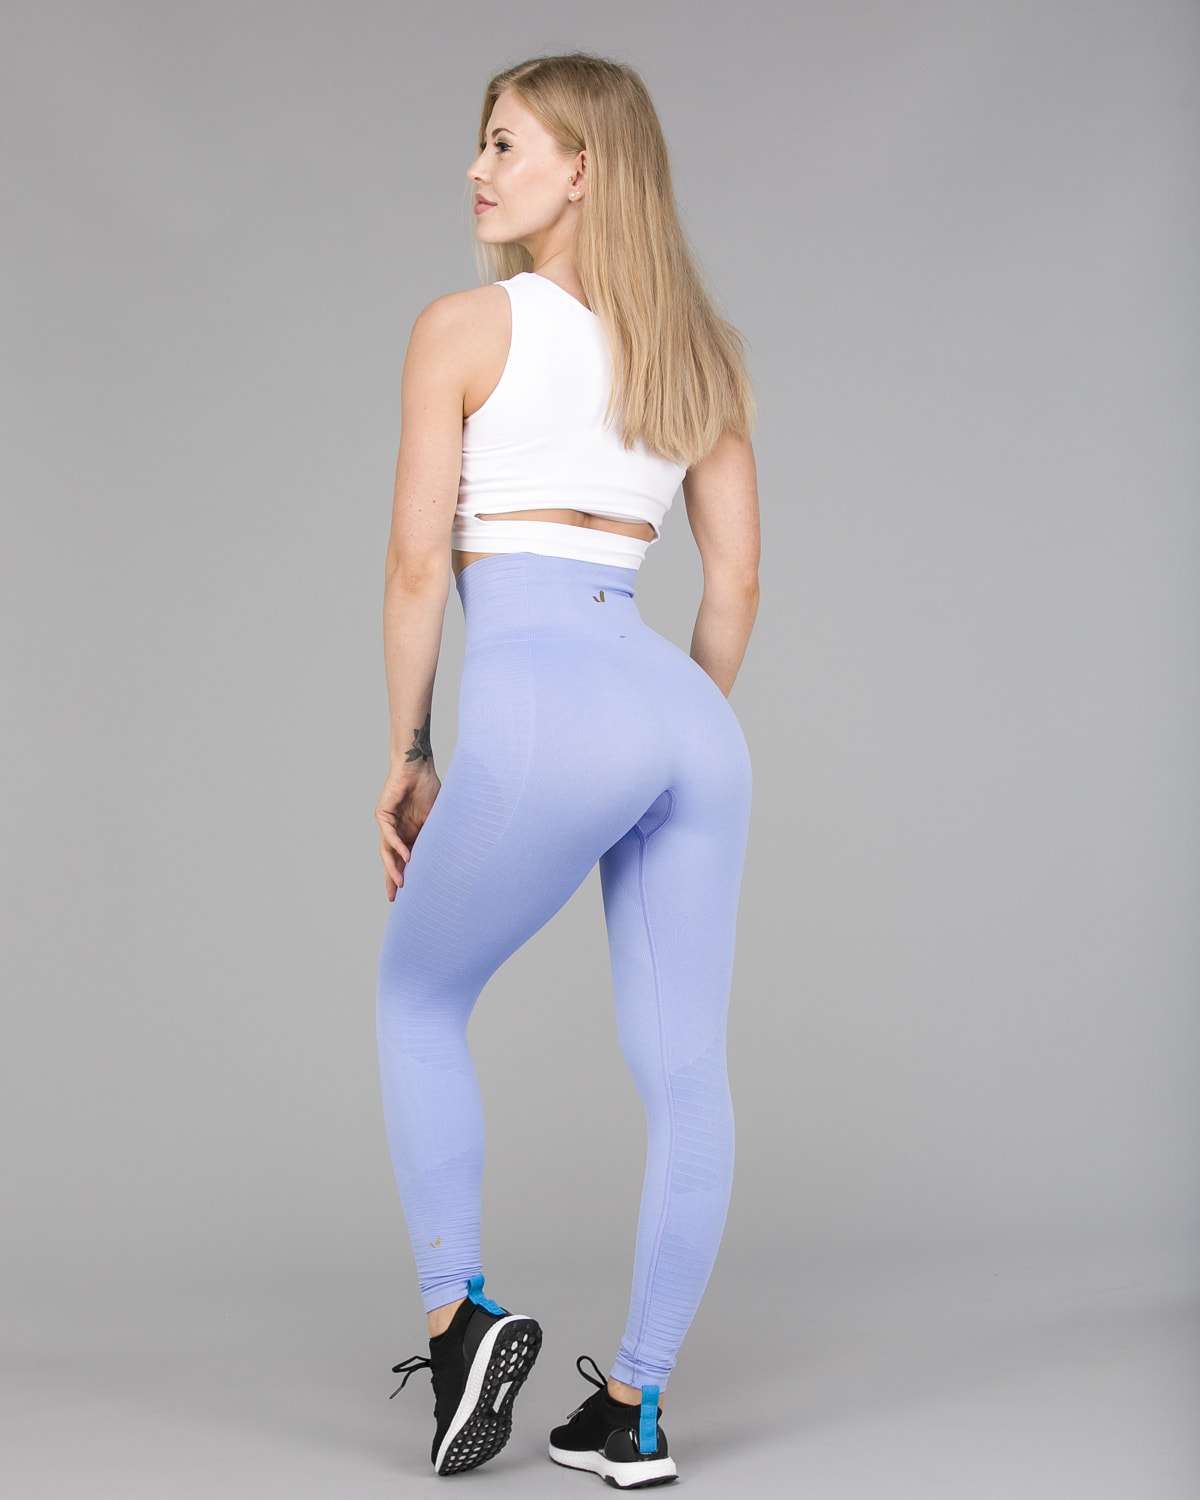 Jerf Gela 2.0 Tights Blue Pastel5